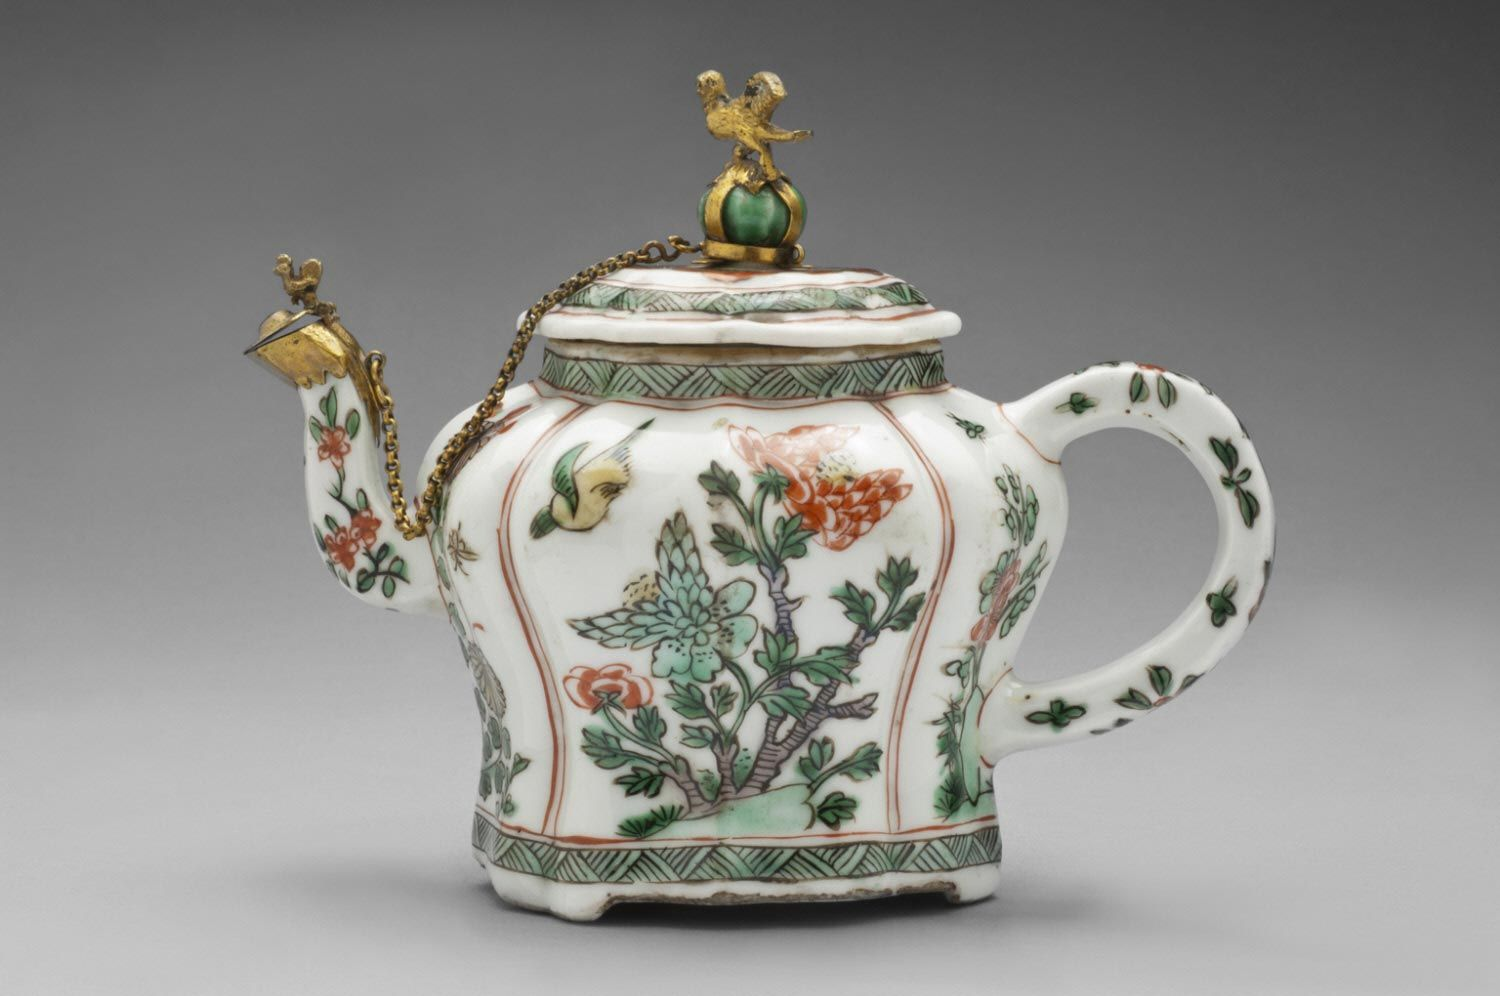 Teapot and Cover Artist/maker unknown, Chinese Qing Dynasty (1644-1911) Kangxi Period (1662-1722)